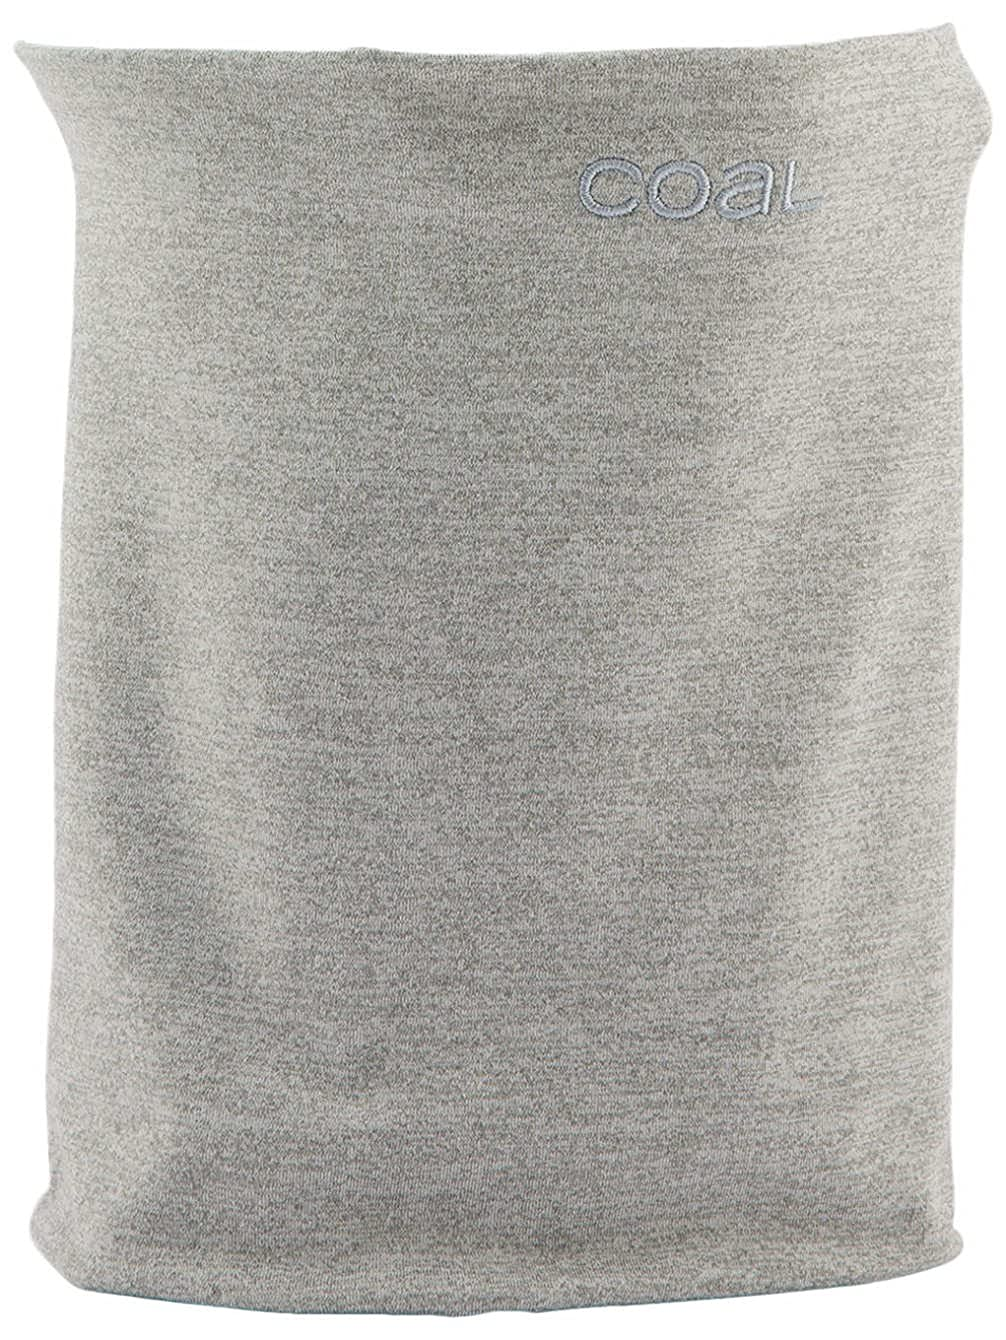 Coal - The MTN Neck Warmer 2016 Heather Grey